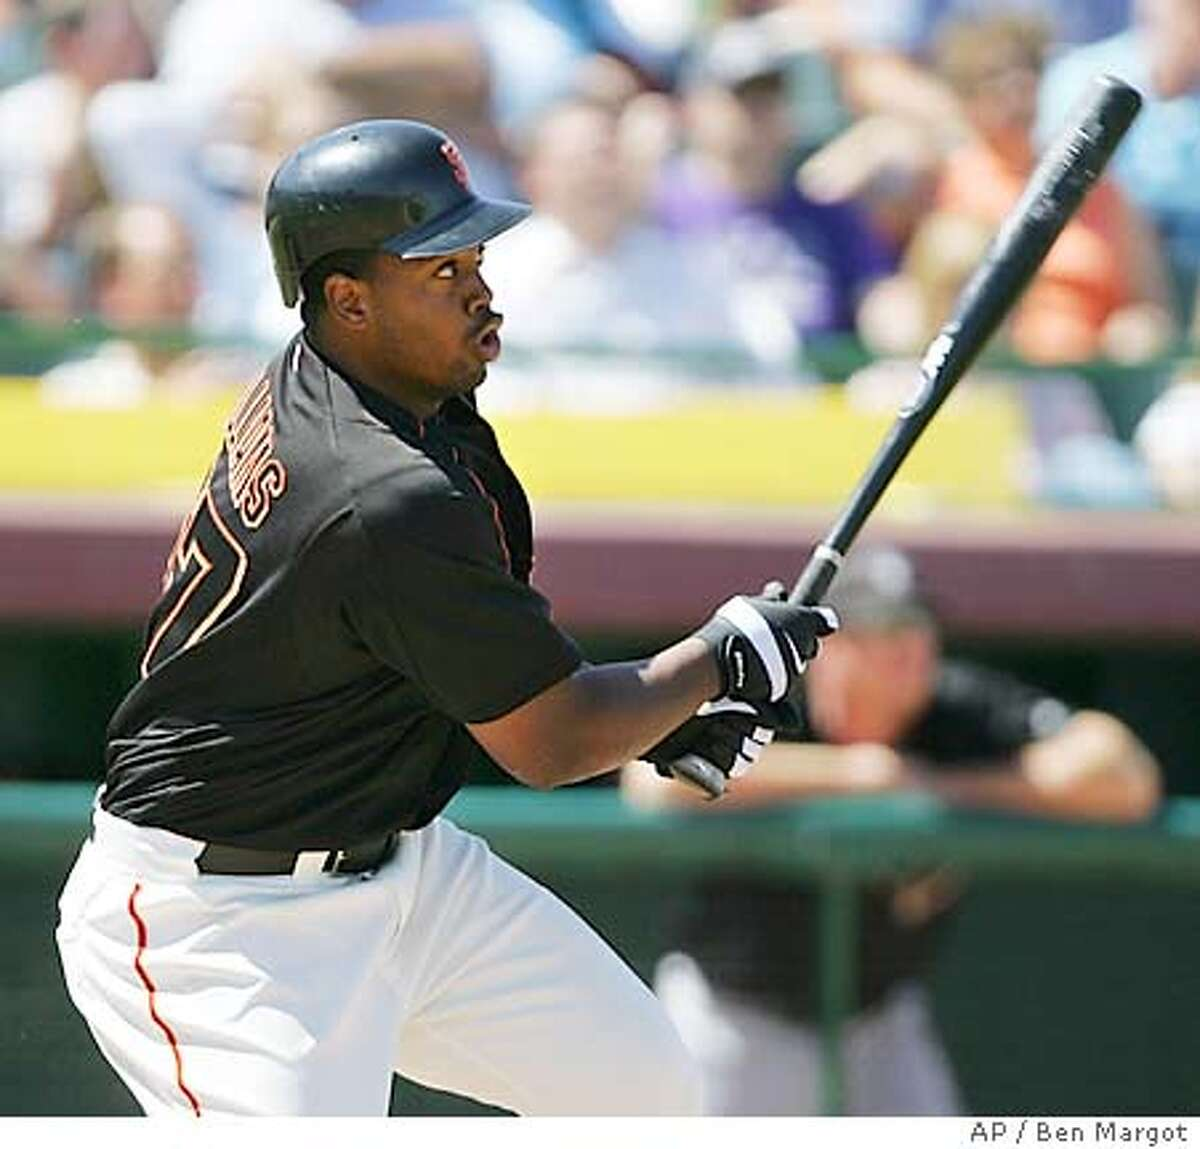 San Francisco Giants pitcher Jerome Williams swings for a two run triple in the second inning off Arizona Diamondbacks' Brad HalseyTuesday, March 29, 2005, during a spring training game in Scottsdale, Ariz. (AP Photo/Ben Margot)